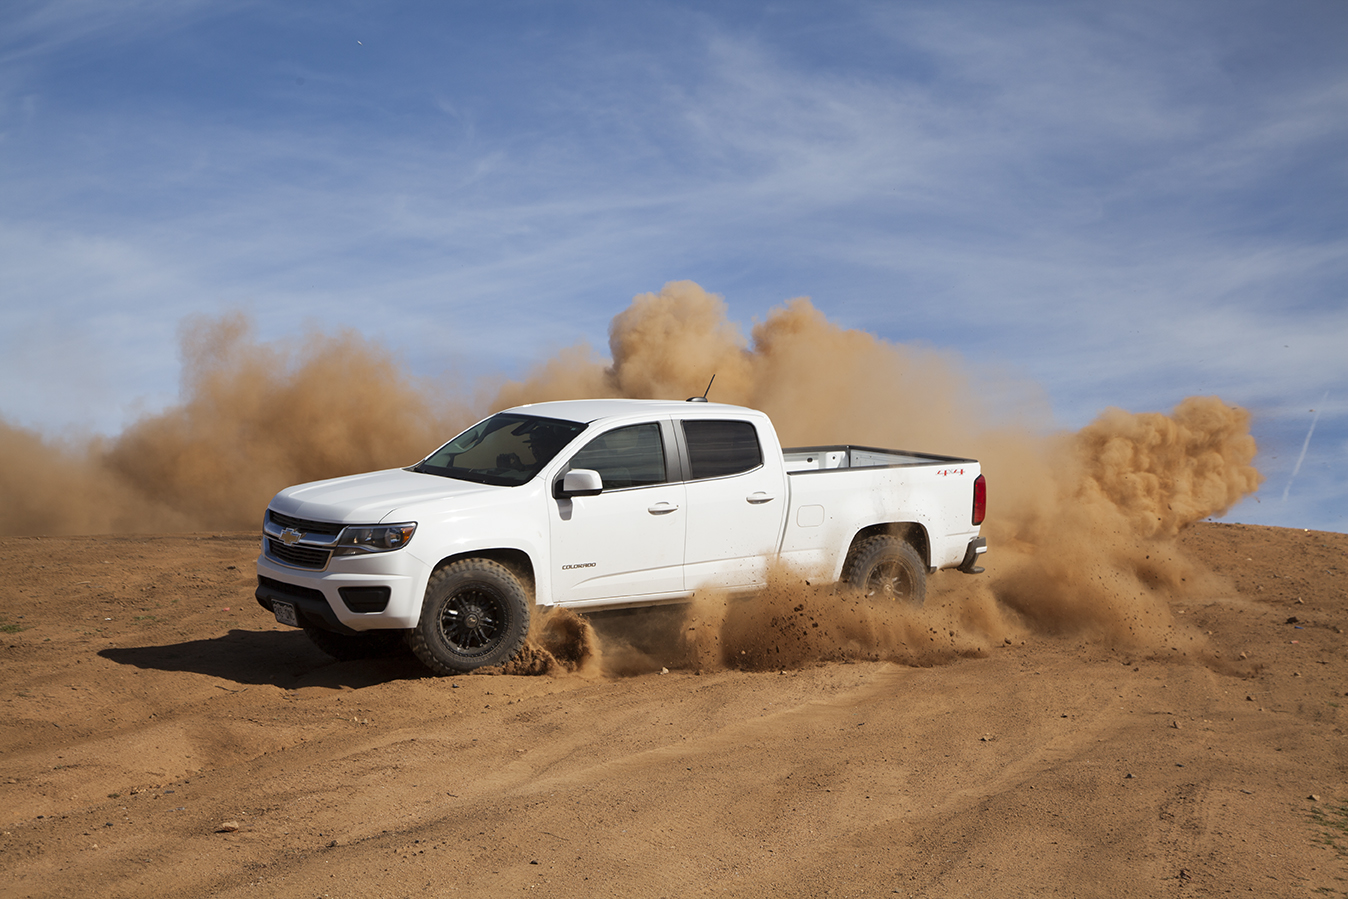 The 2015 Truck Of The Year now with OEM Performance Kit by King Shocks